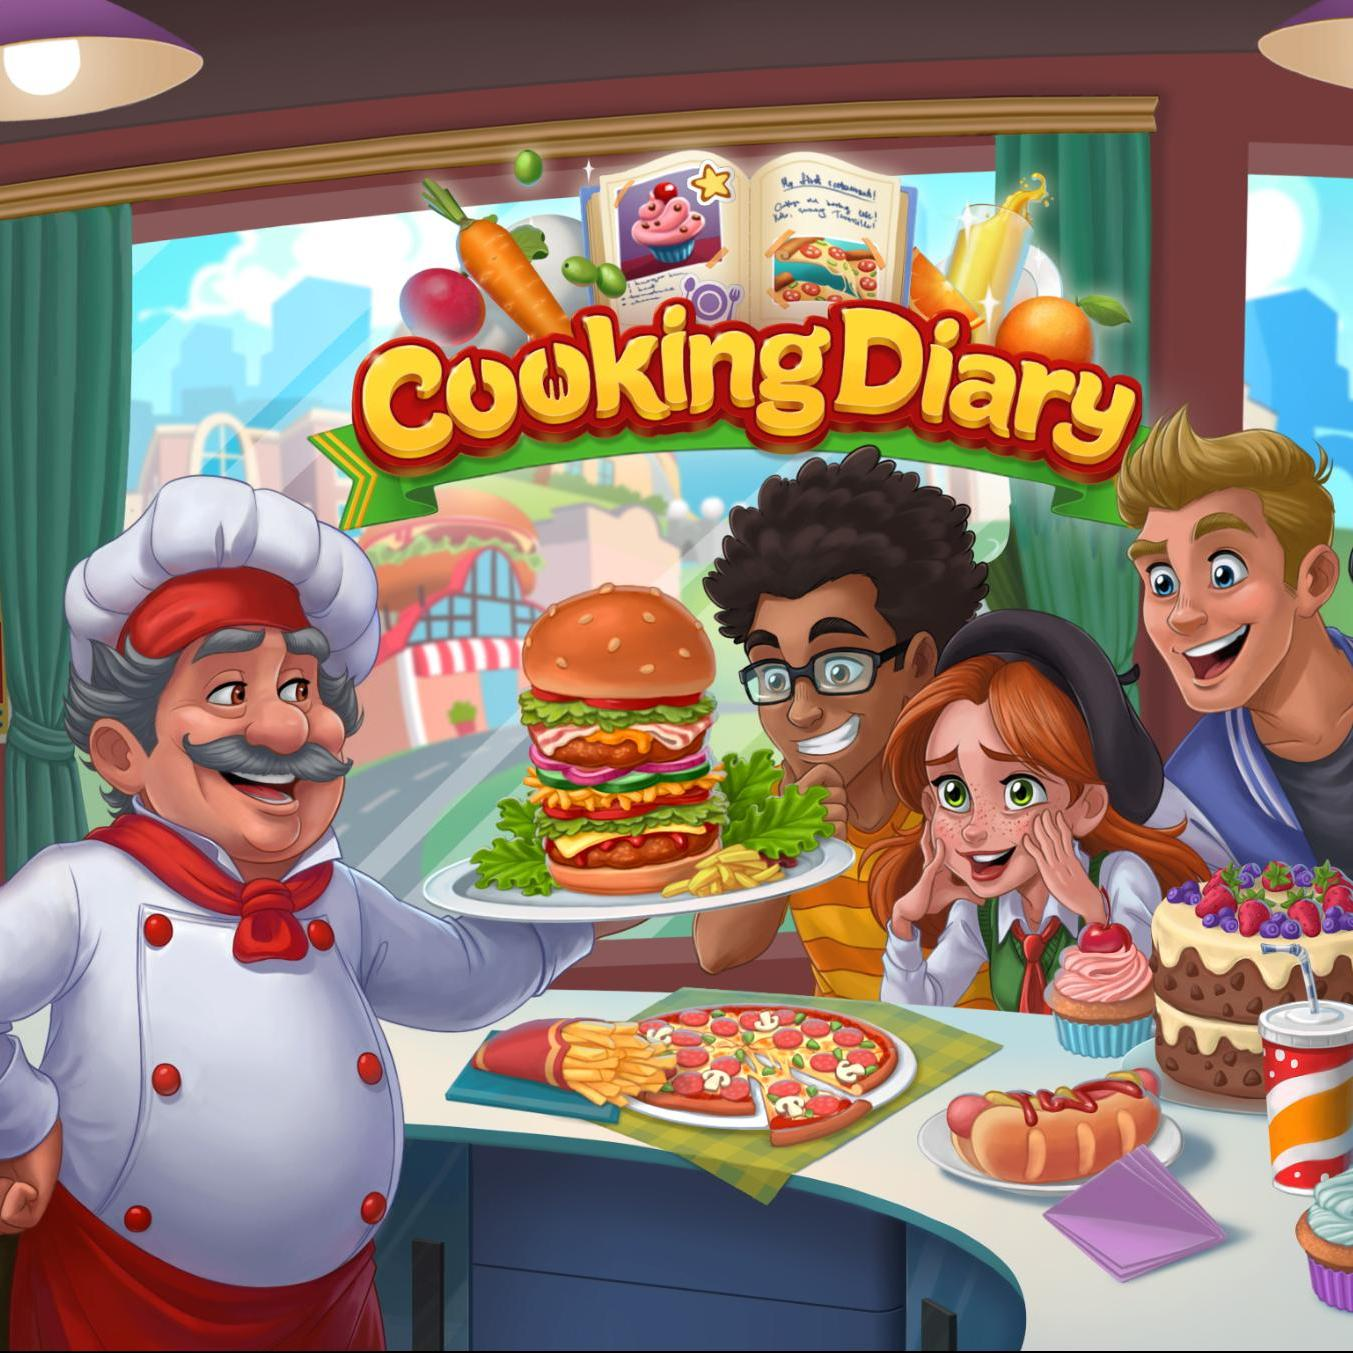 Localization case study: Cooking Diary